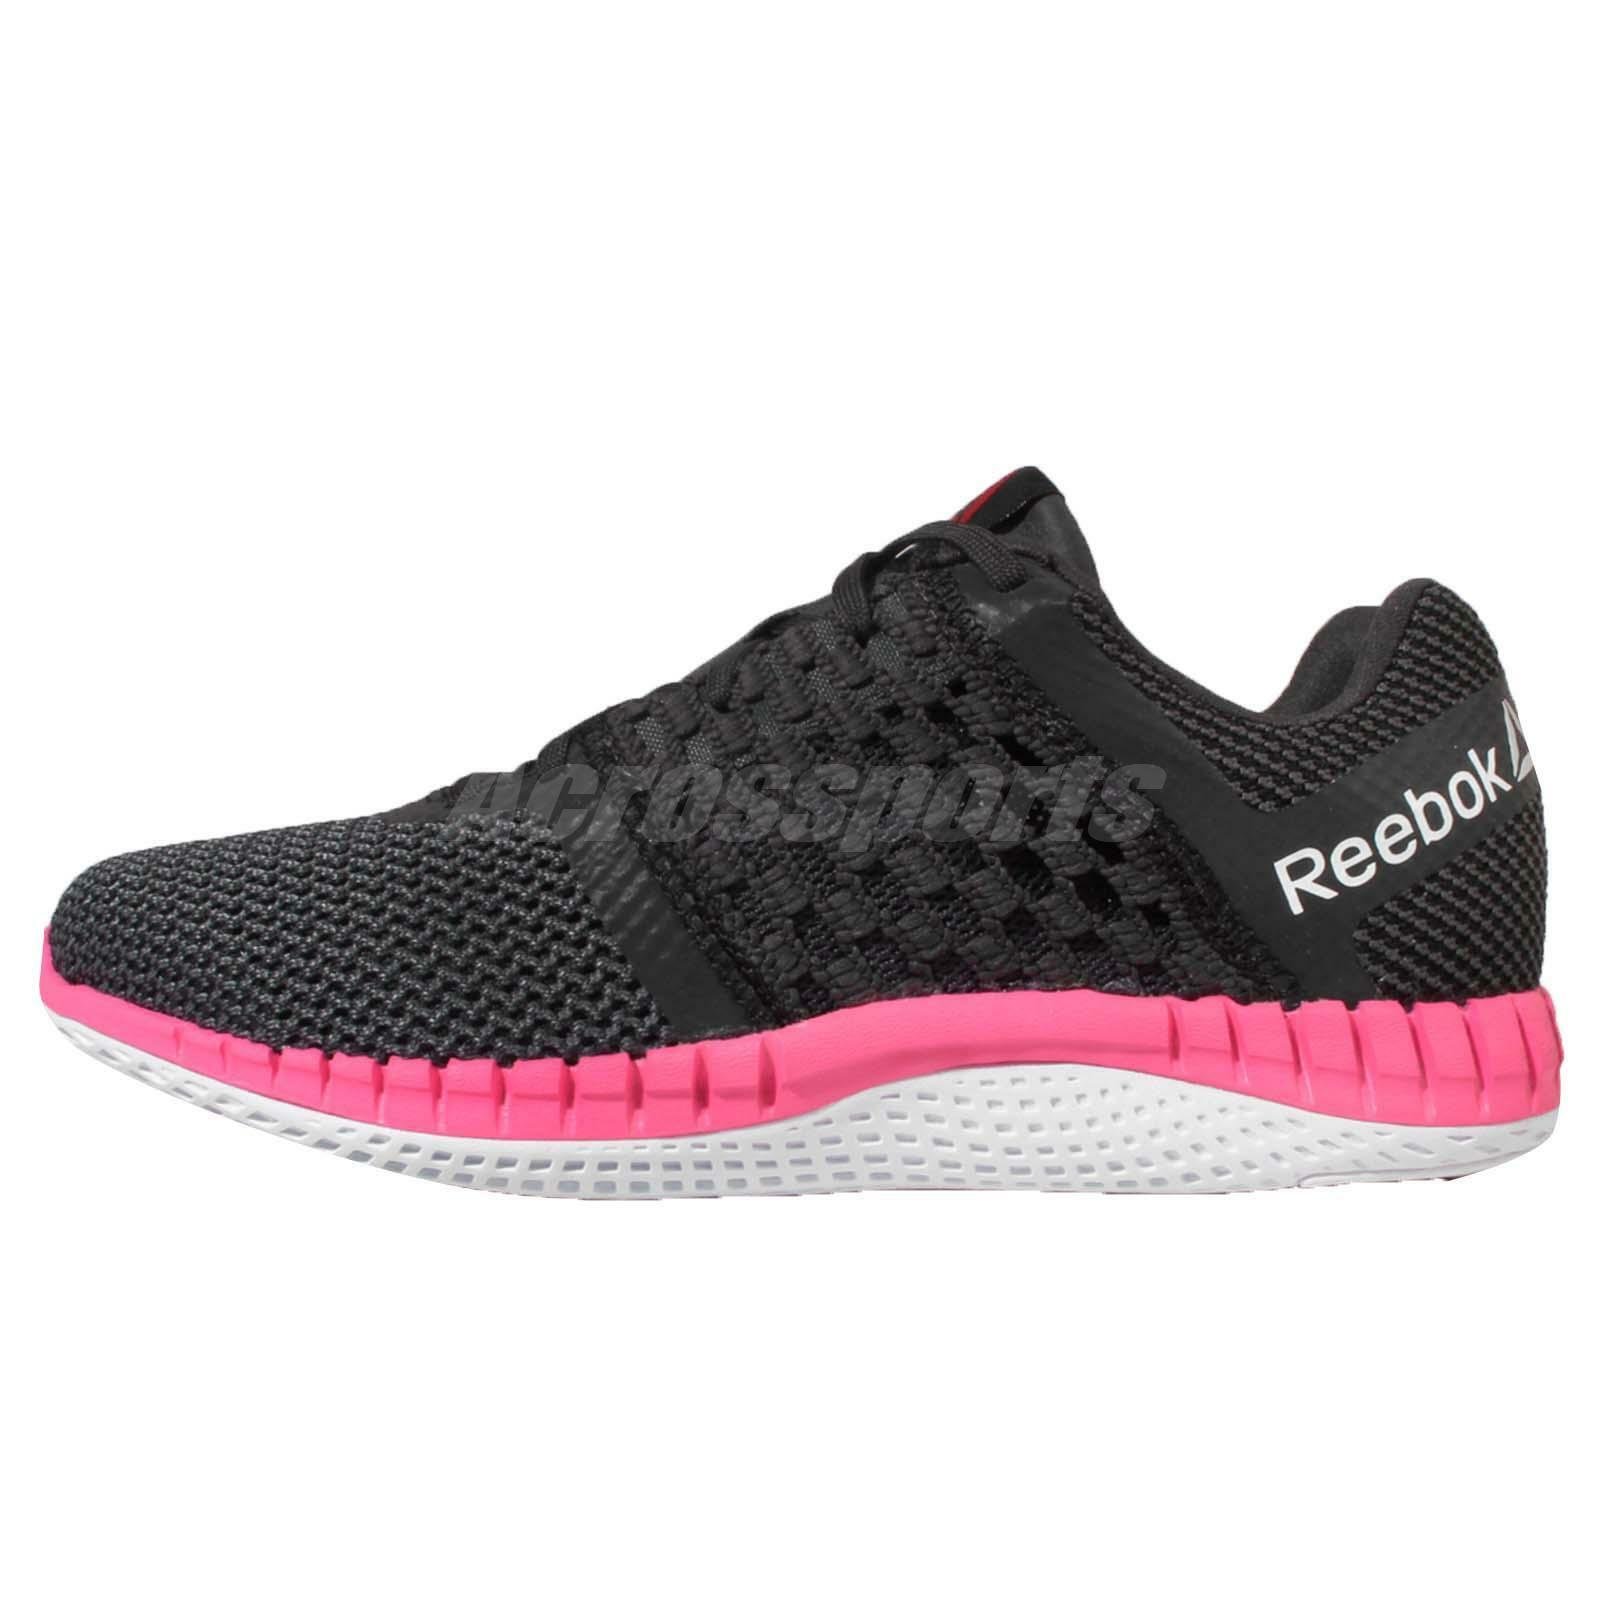 Reebok ZPrint Run Black Pink White Womens Running Shoes Trainers Sneakers V72329